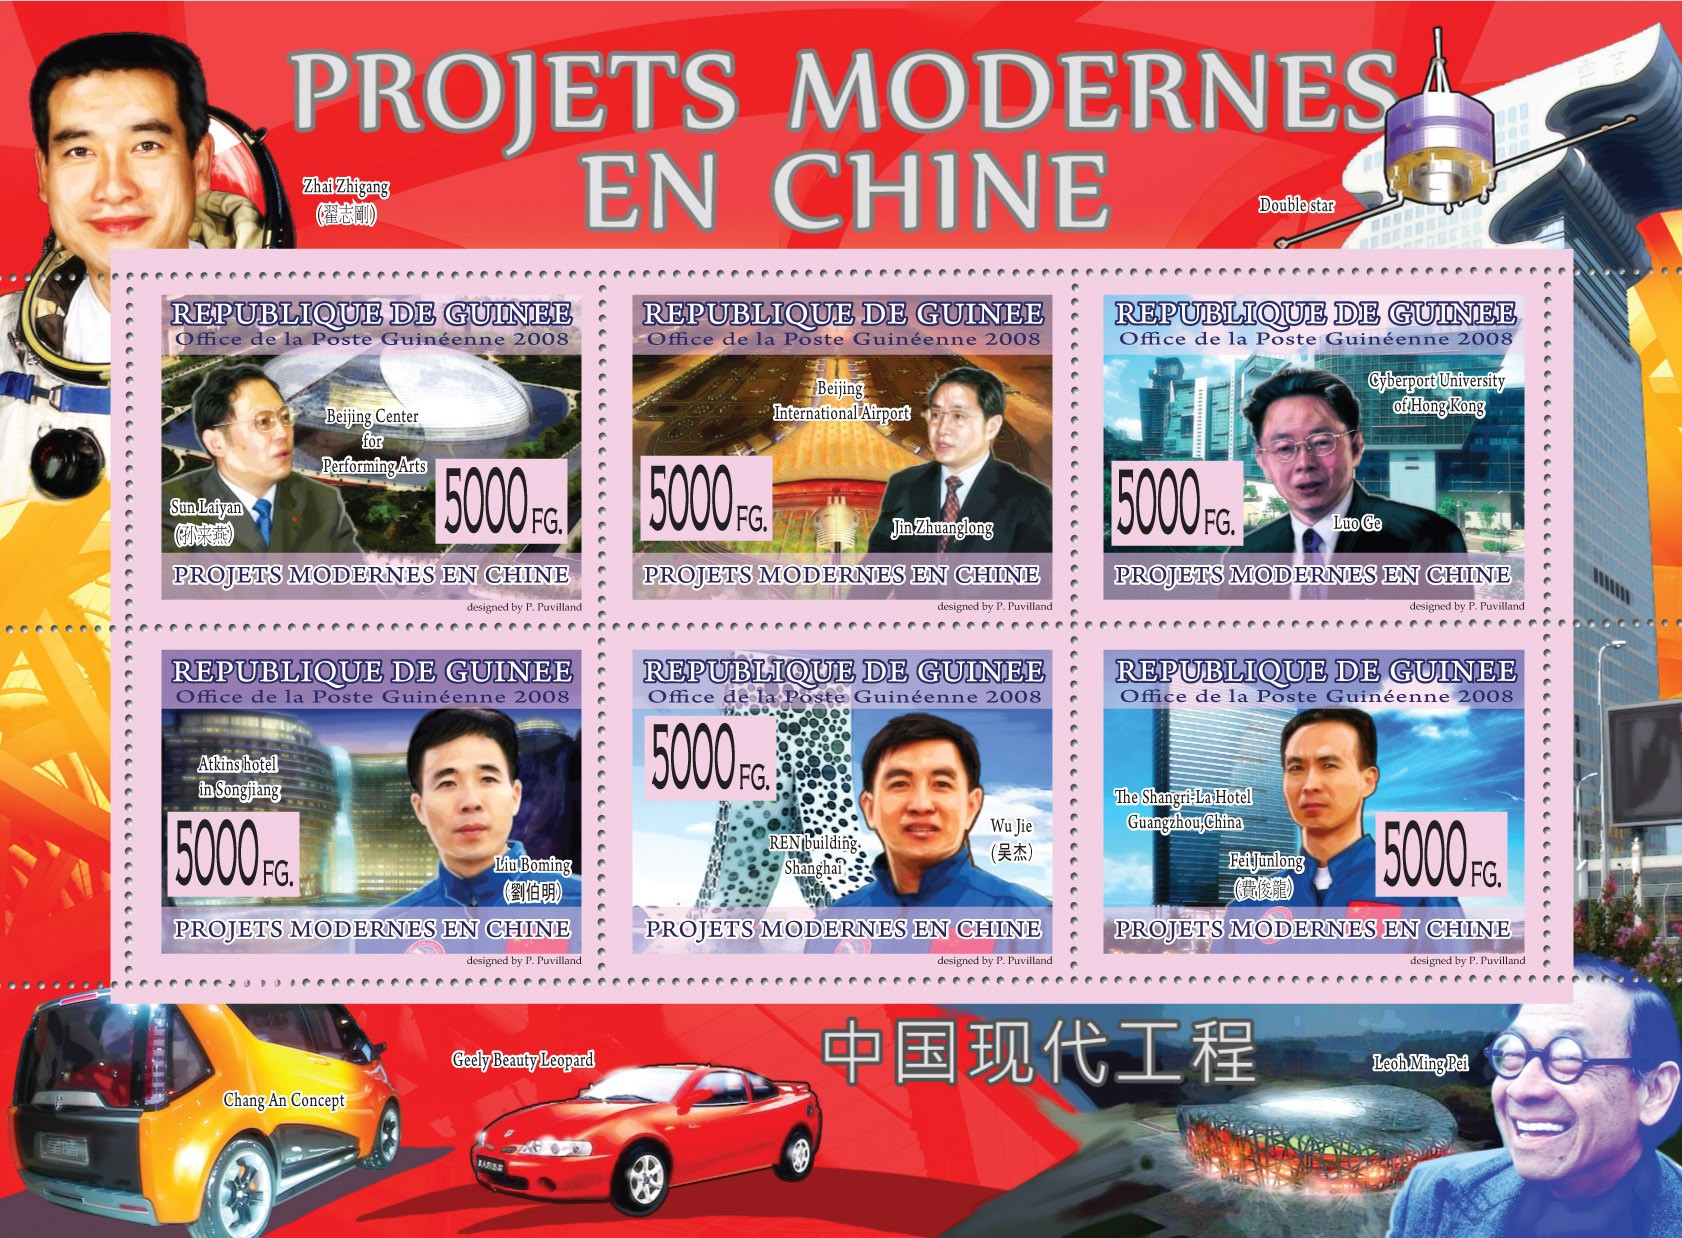 MODERN PROJECTS IN CHINABeijing International Airport, REN building, Cyber Sport University of Honkong, Beijing center for Performing Arts - Issue of Guinée postage stamps